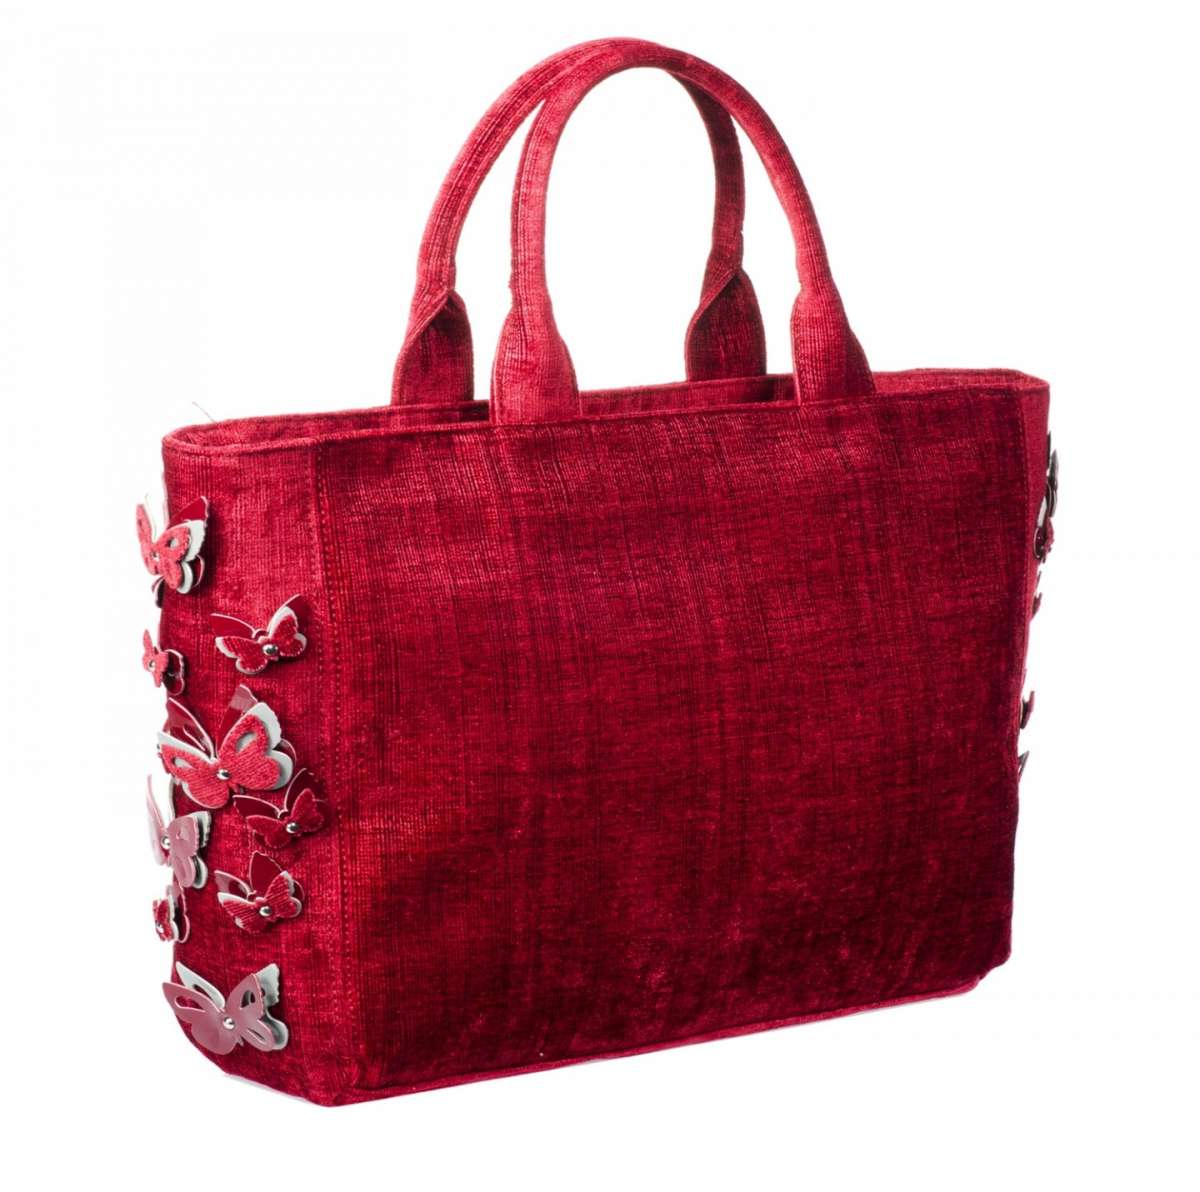 Pinko Bag in velluto corallo